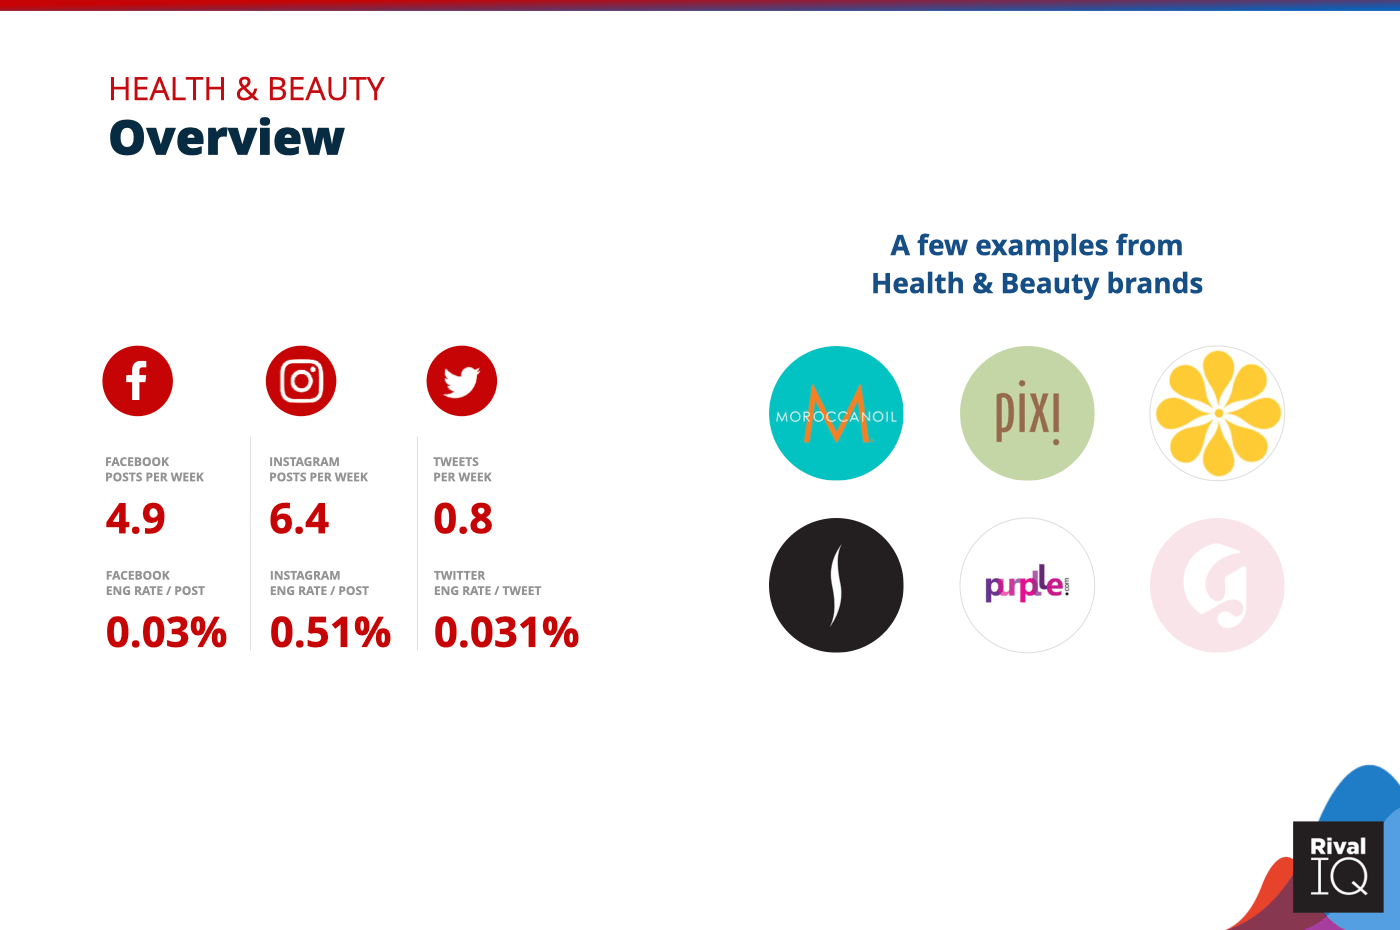 Overview of all benchmarks, Health & Beauty